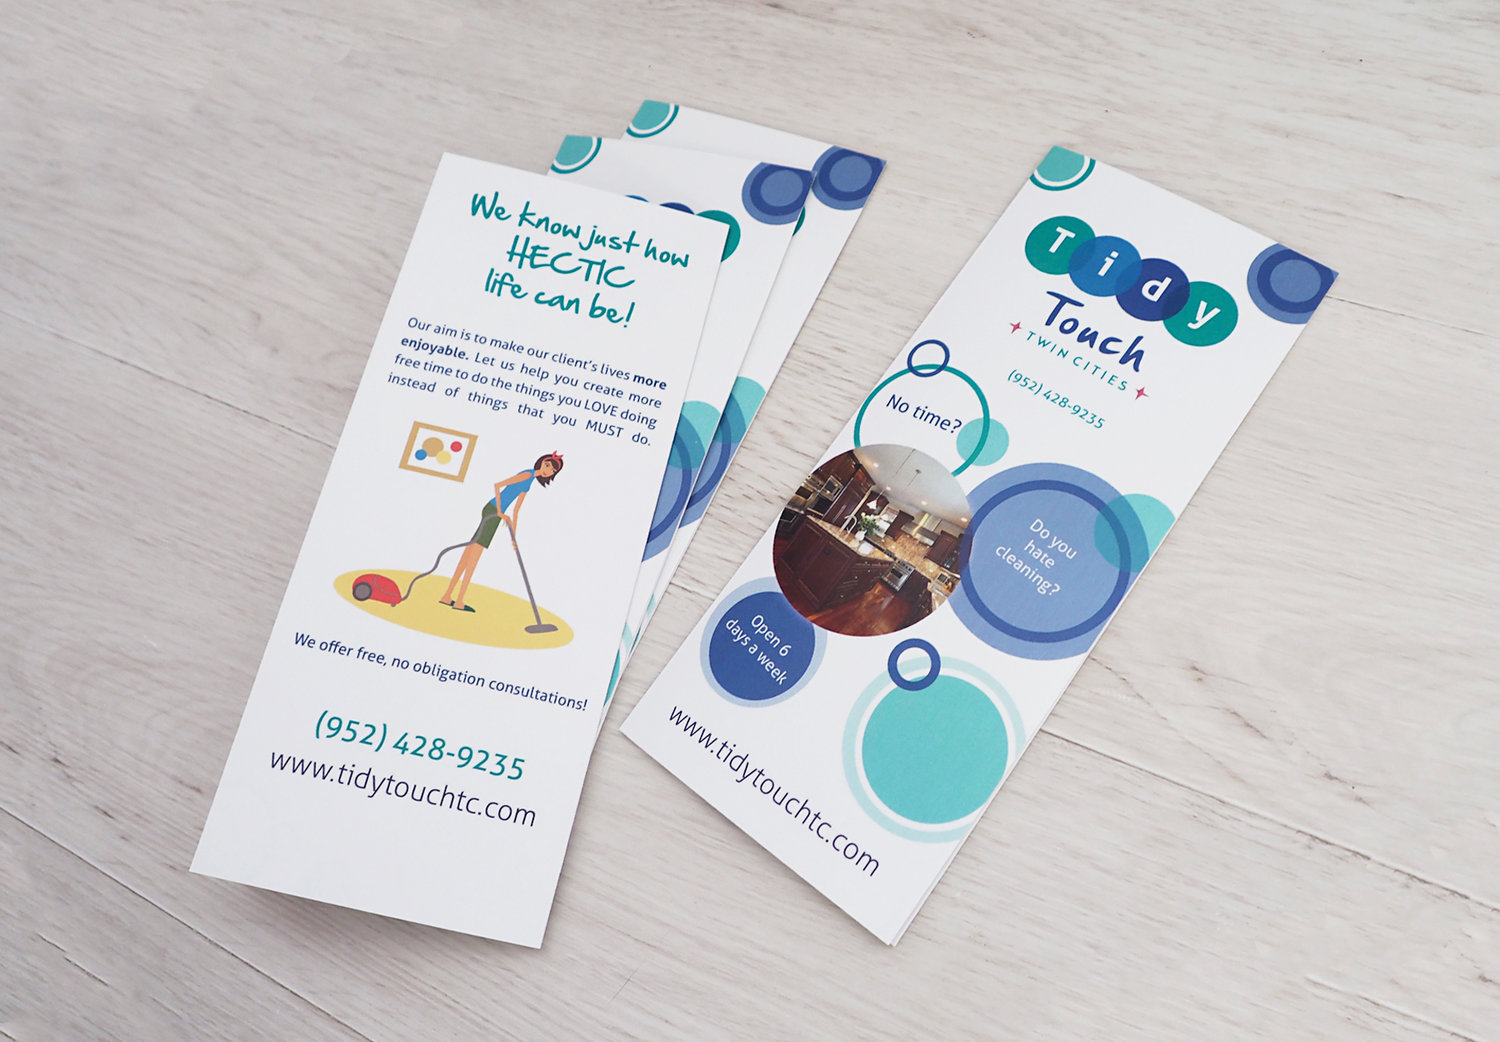 Informational Brochure - This is one of Tidy Touch's go-to printed pieces when going on a consultation visit. The design was kept clean and stuck with the bubble theme.